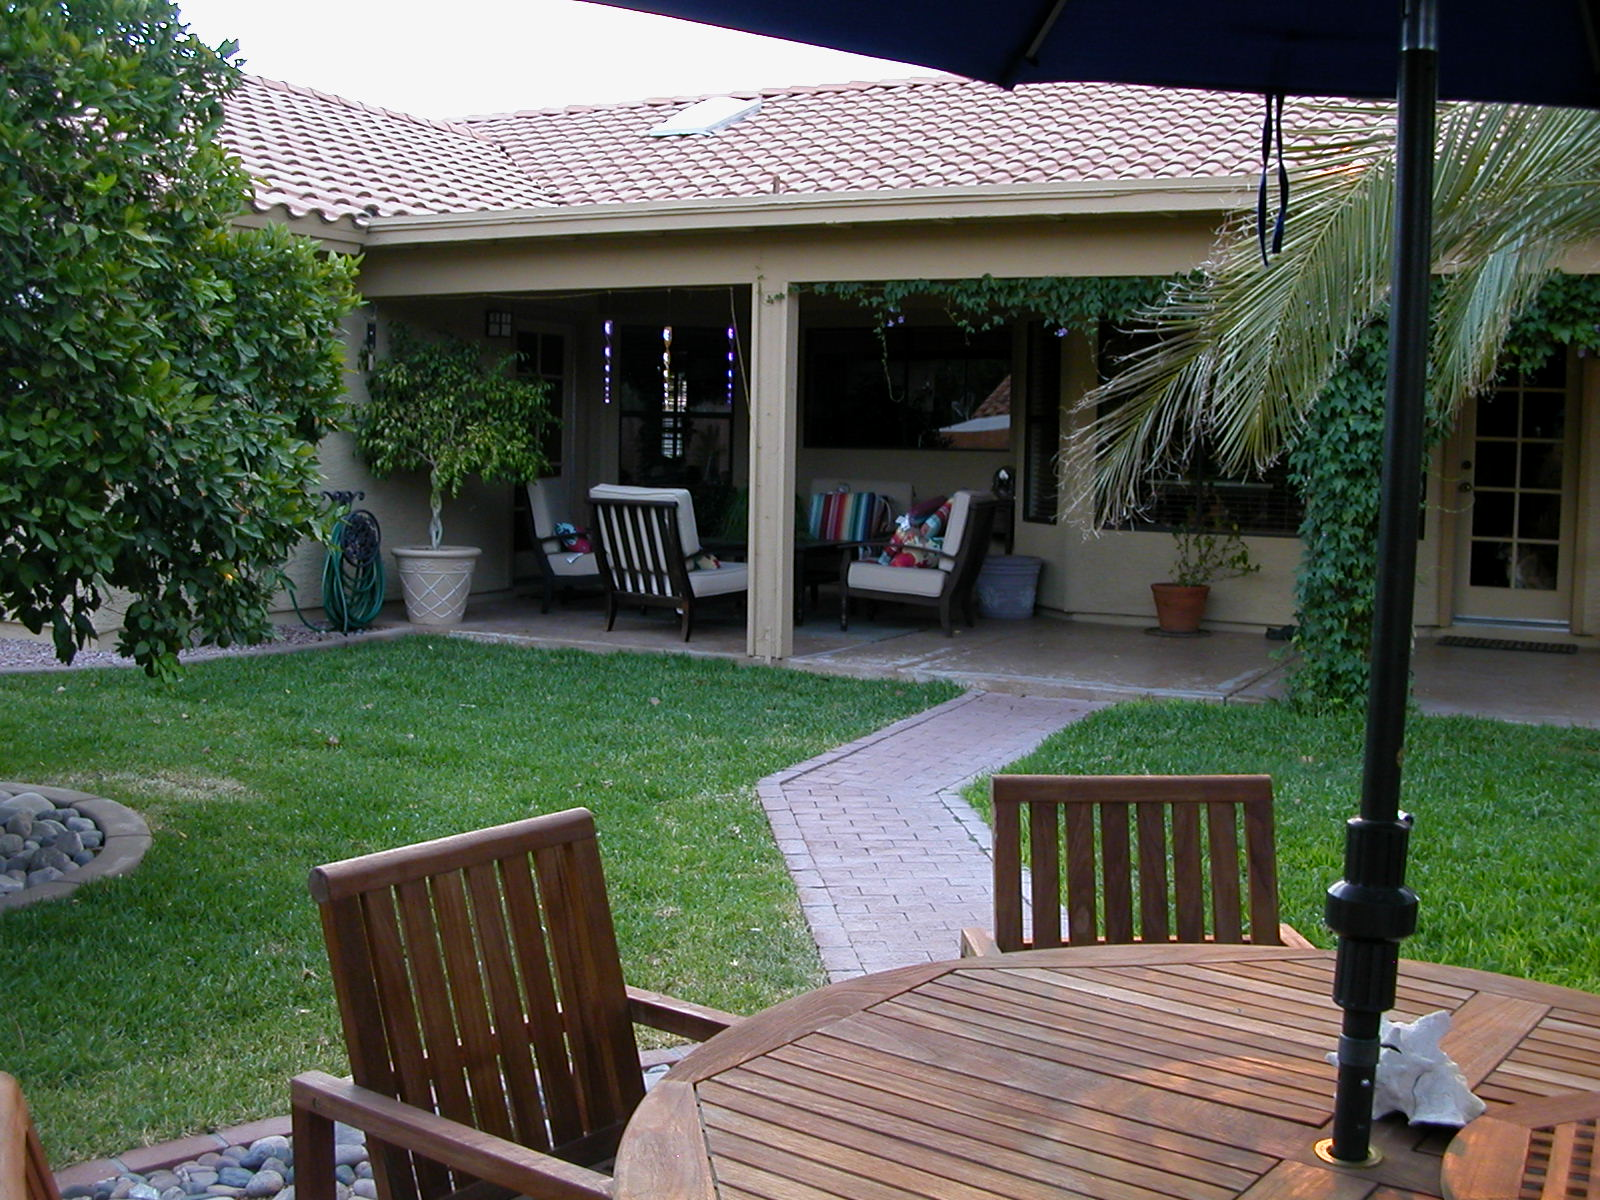 Yard to patio view